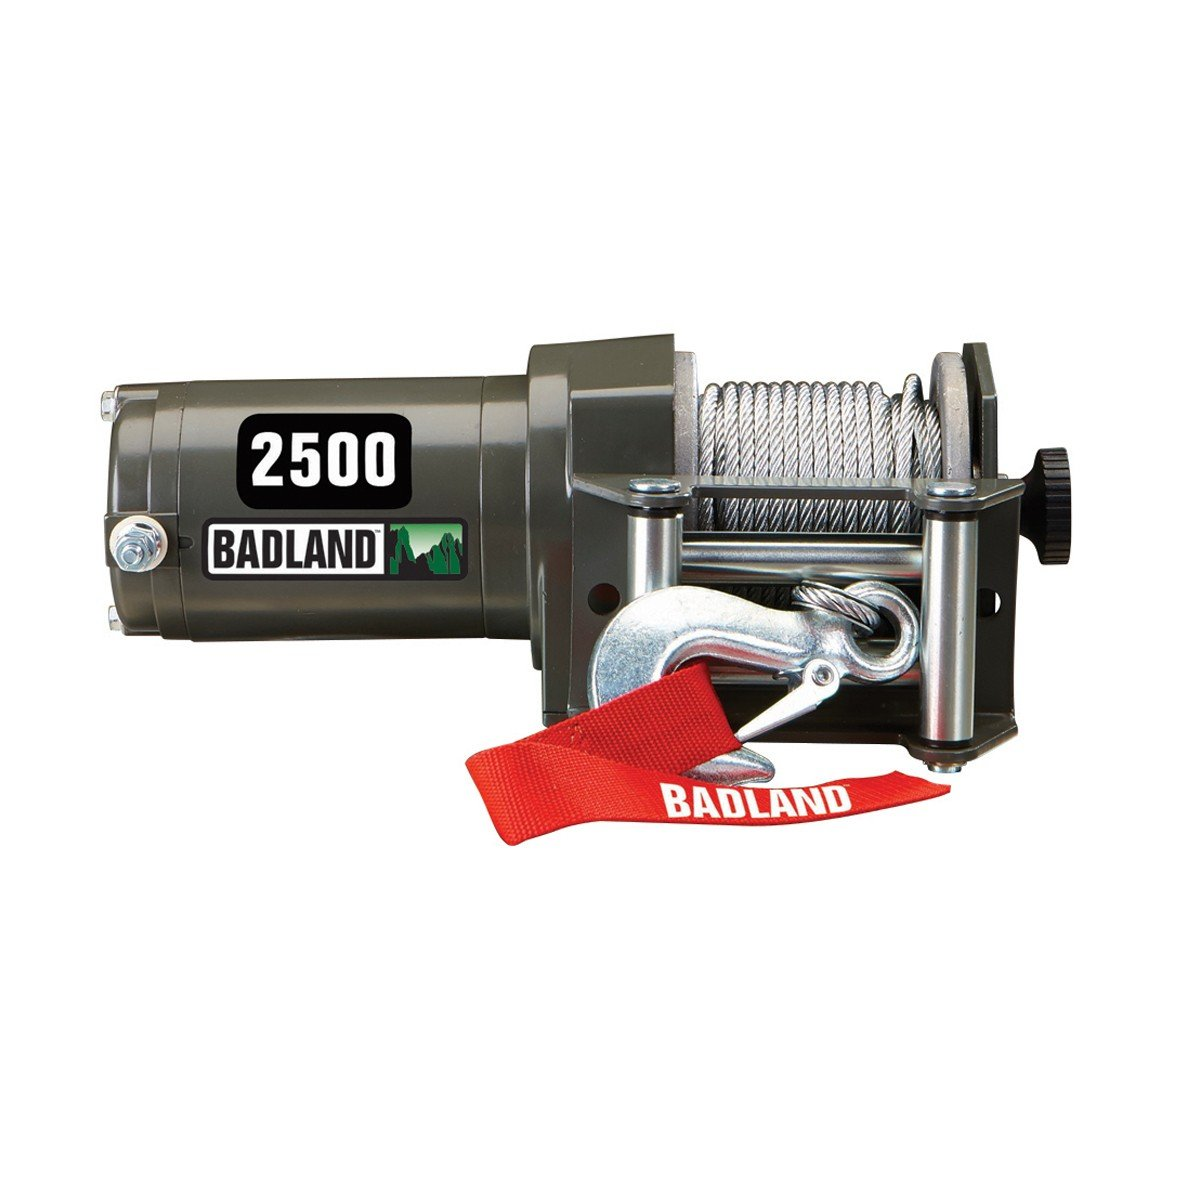 61lqmeBu1dL._SL1200_ 2500 lb electric atv utility winch with wireless remote control badlands 2500 winch wiring diagram at webbmarketing.co